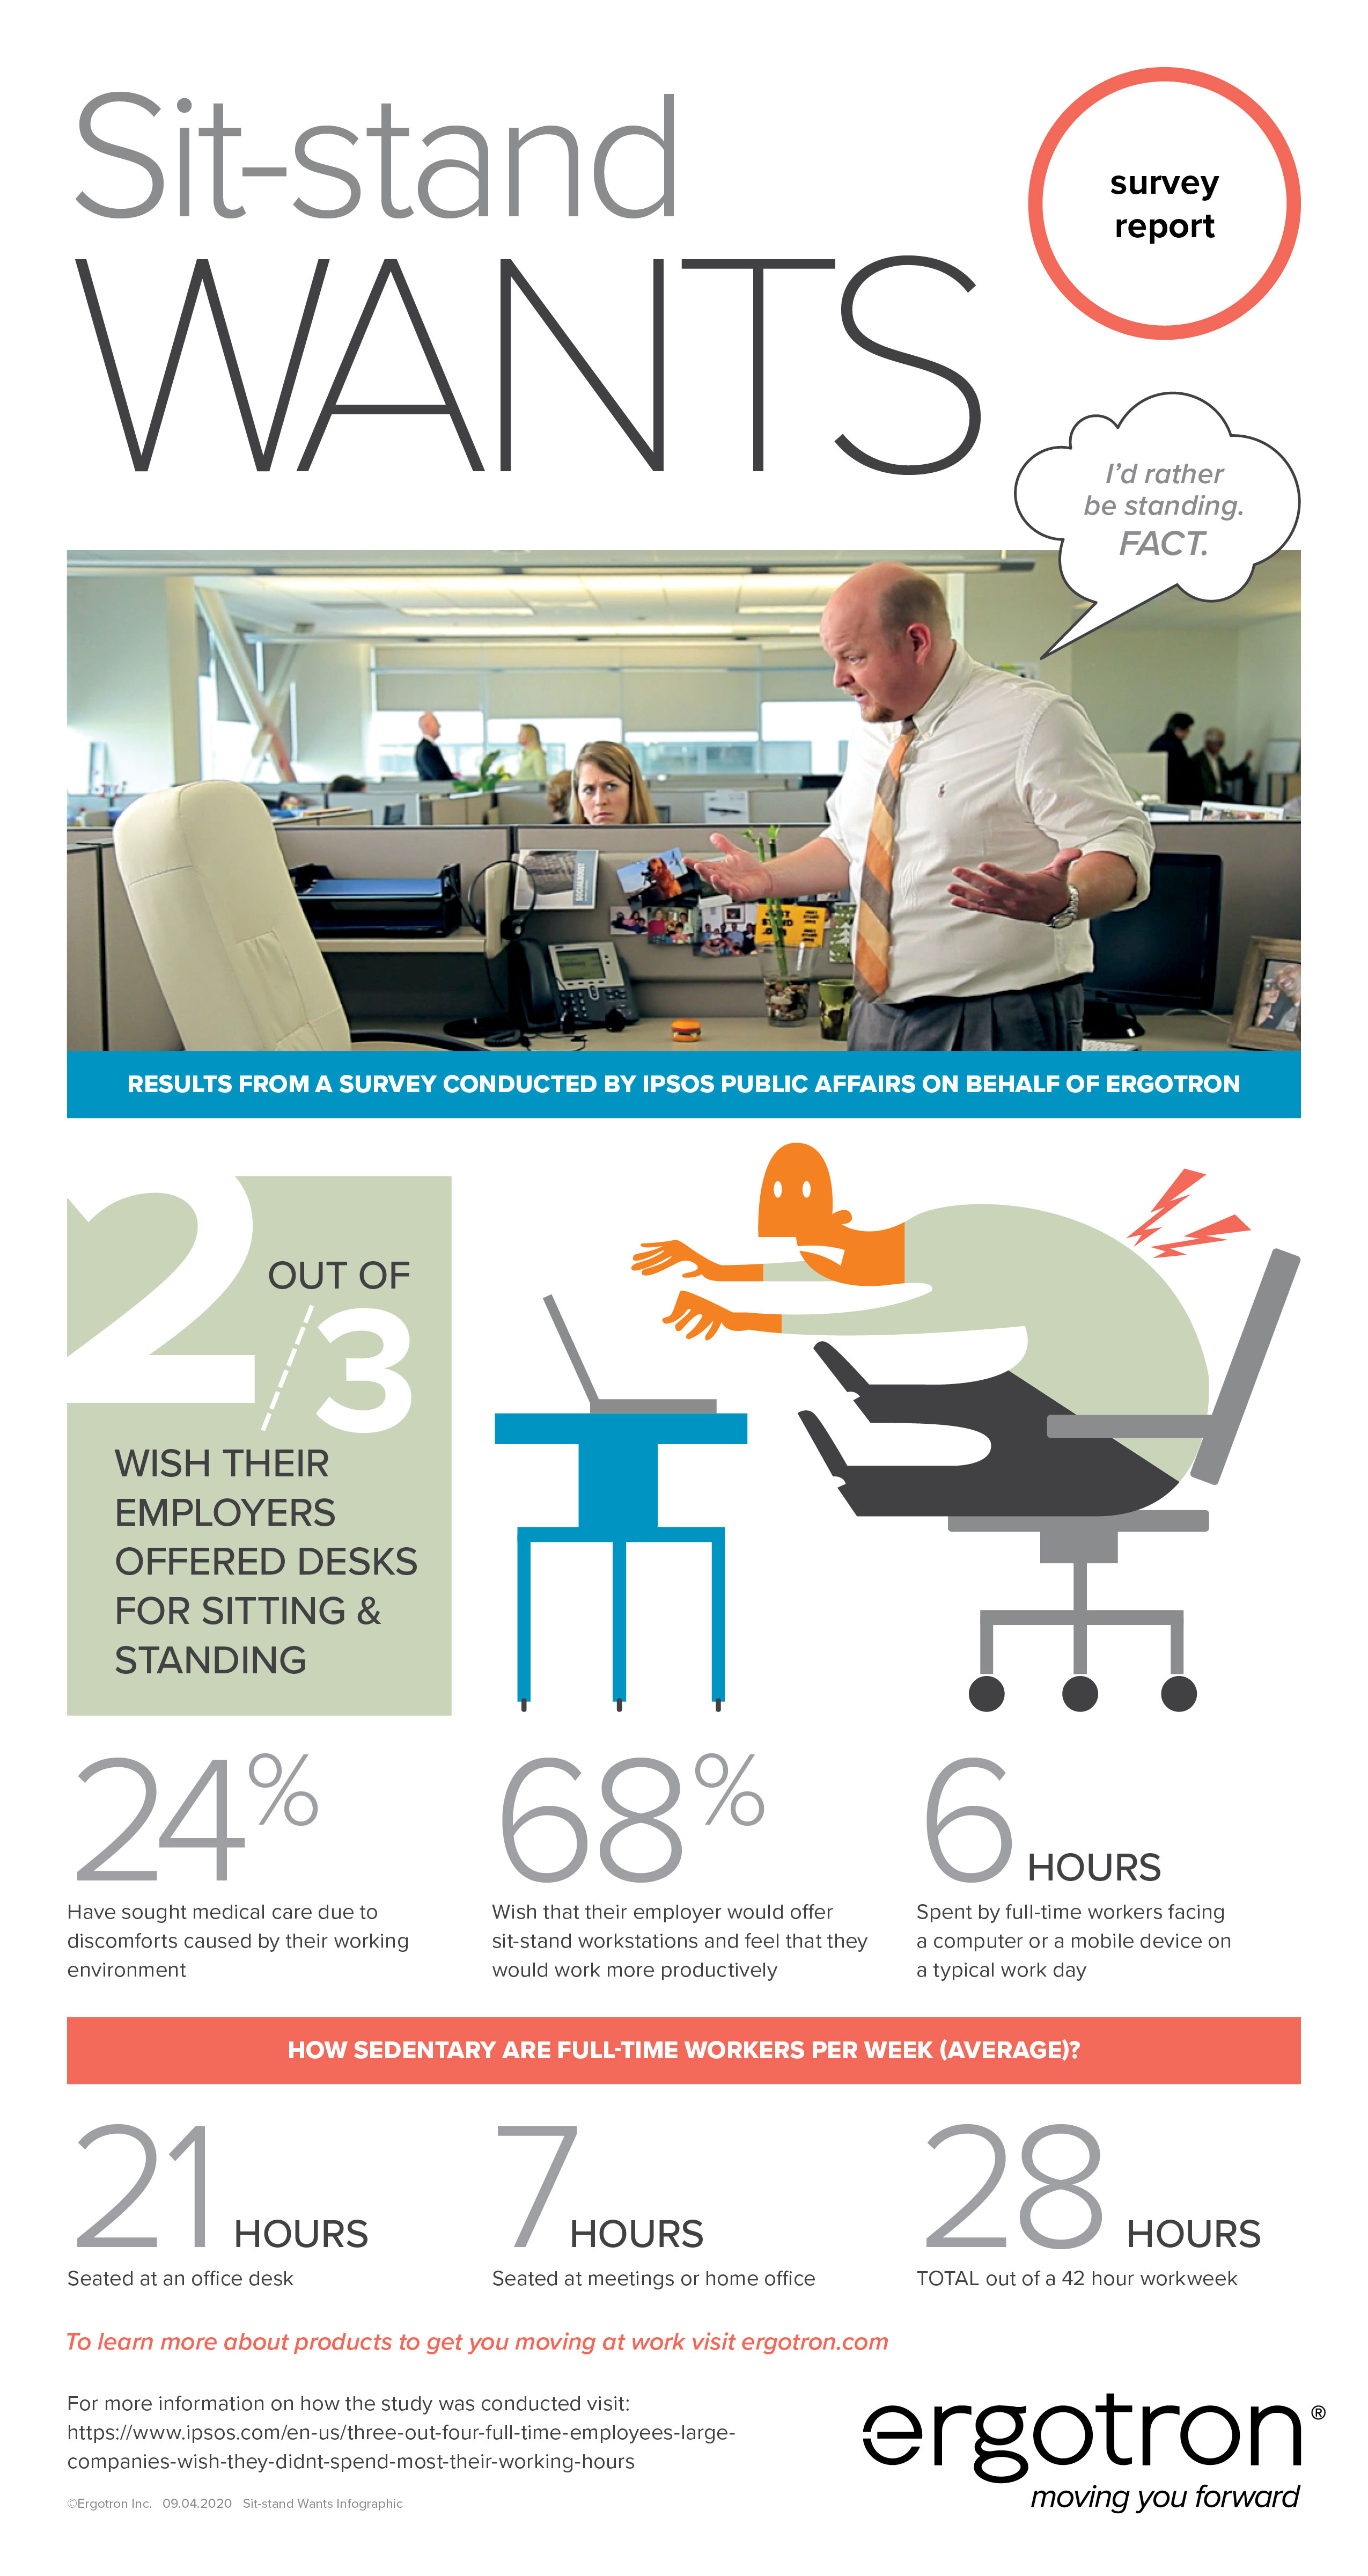 Sit-Stand Wants: Workers Want Choice infographic